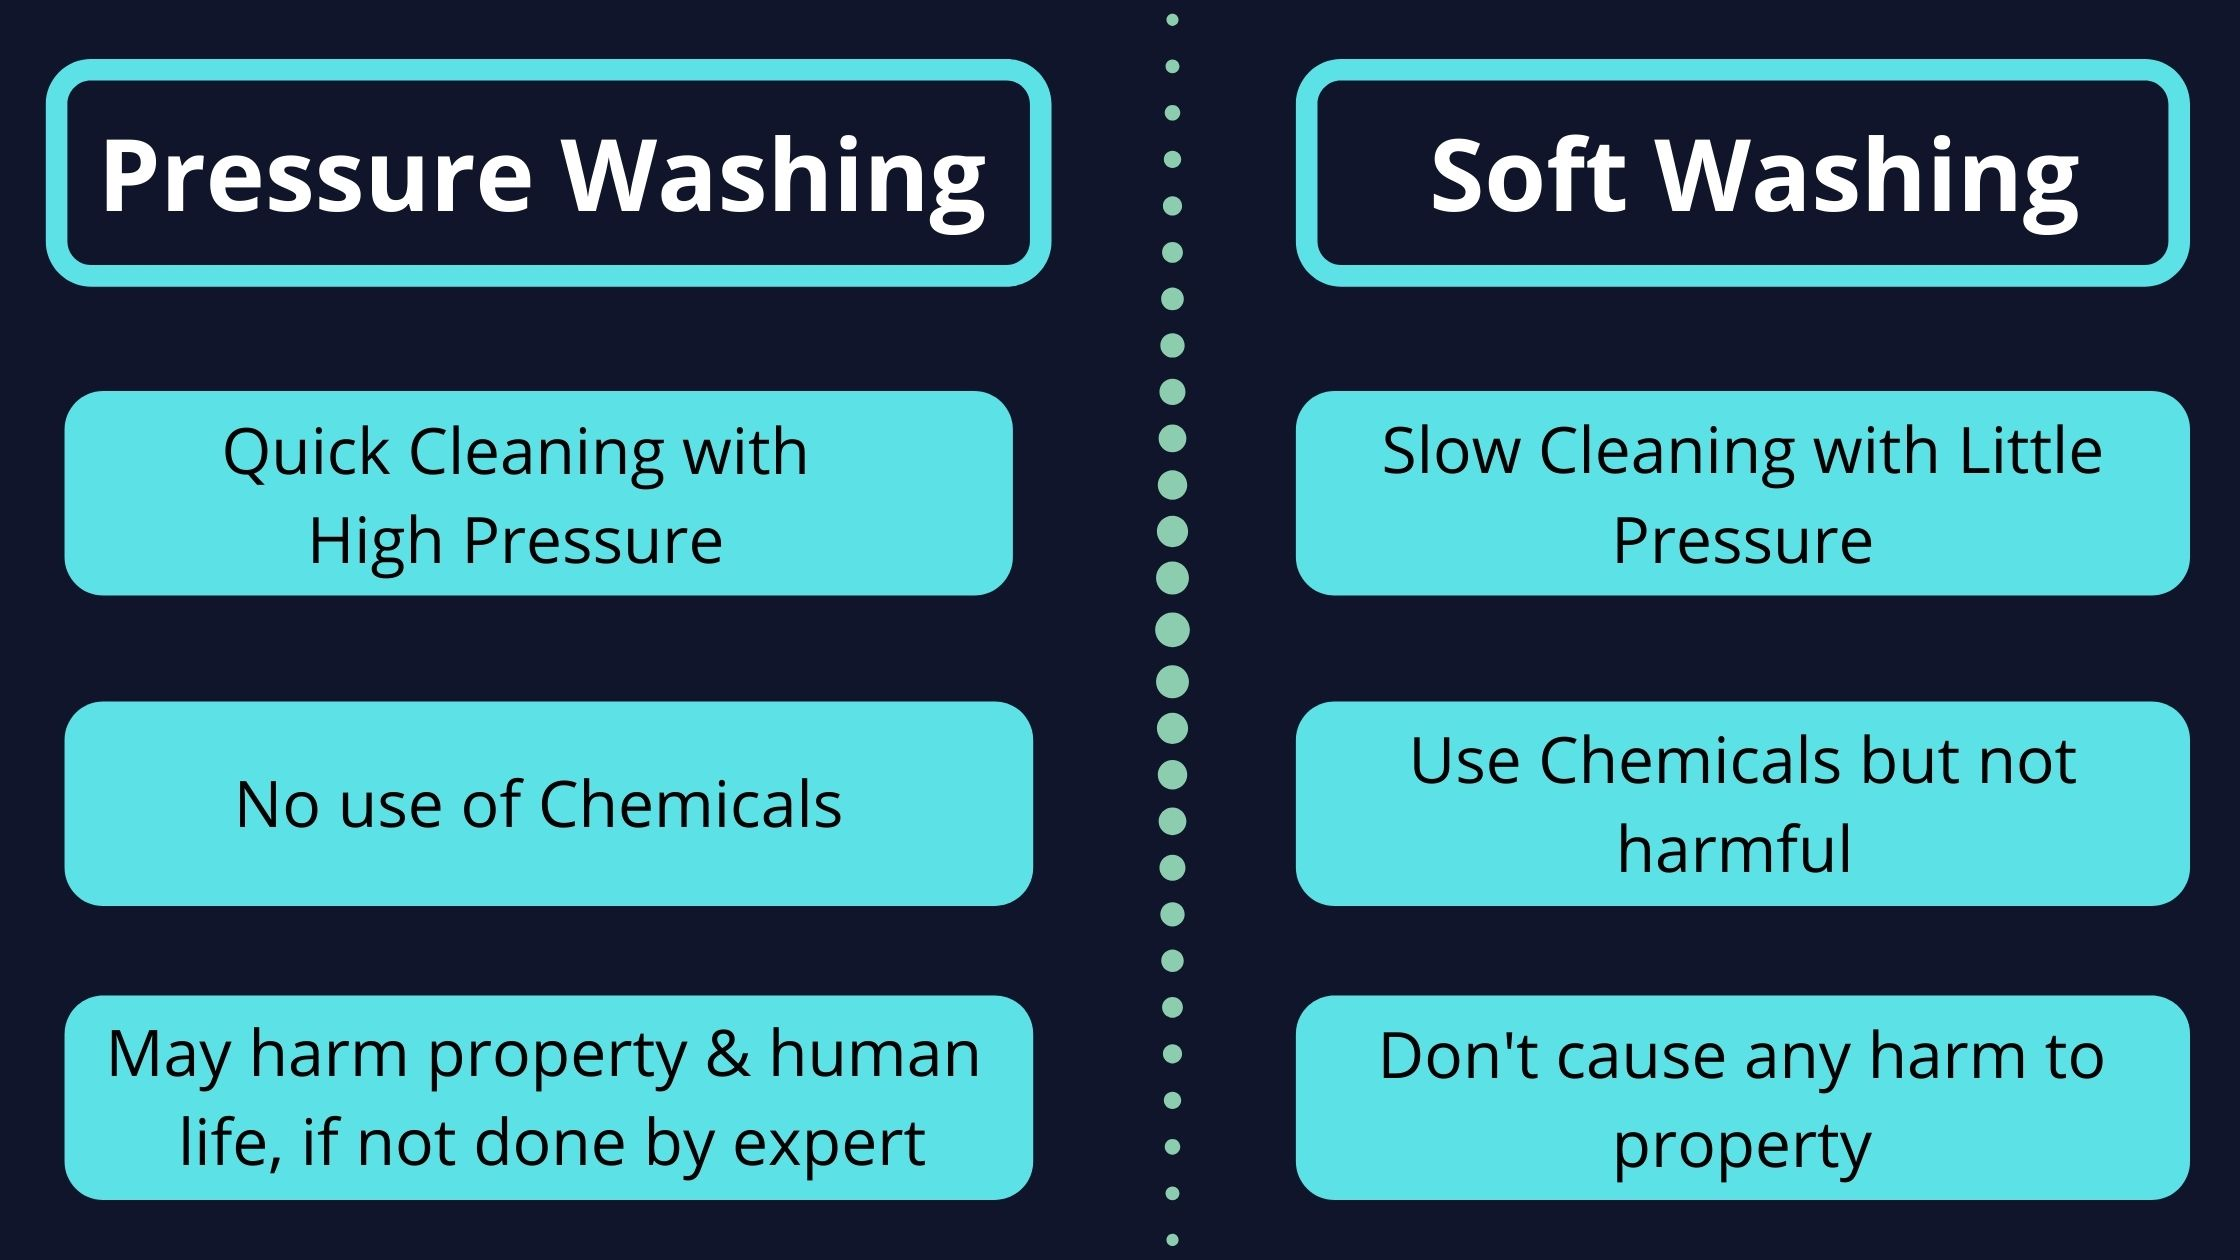 Quick Comparison Between Pressure Washing and Soft Washing